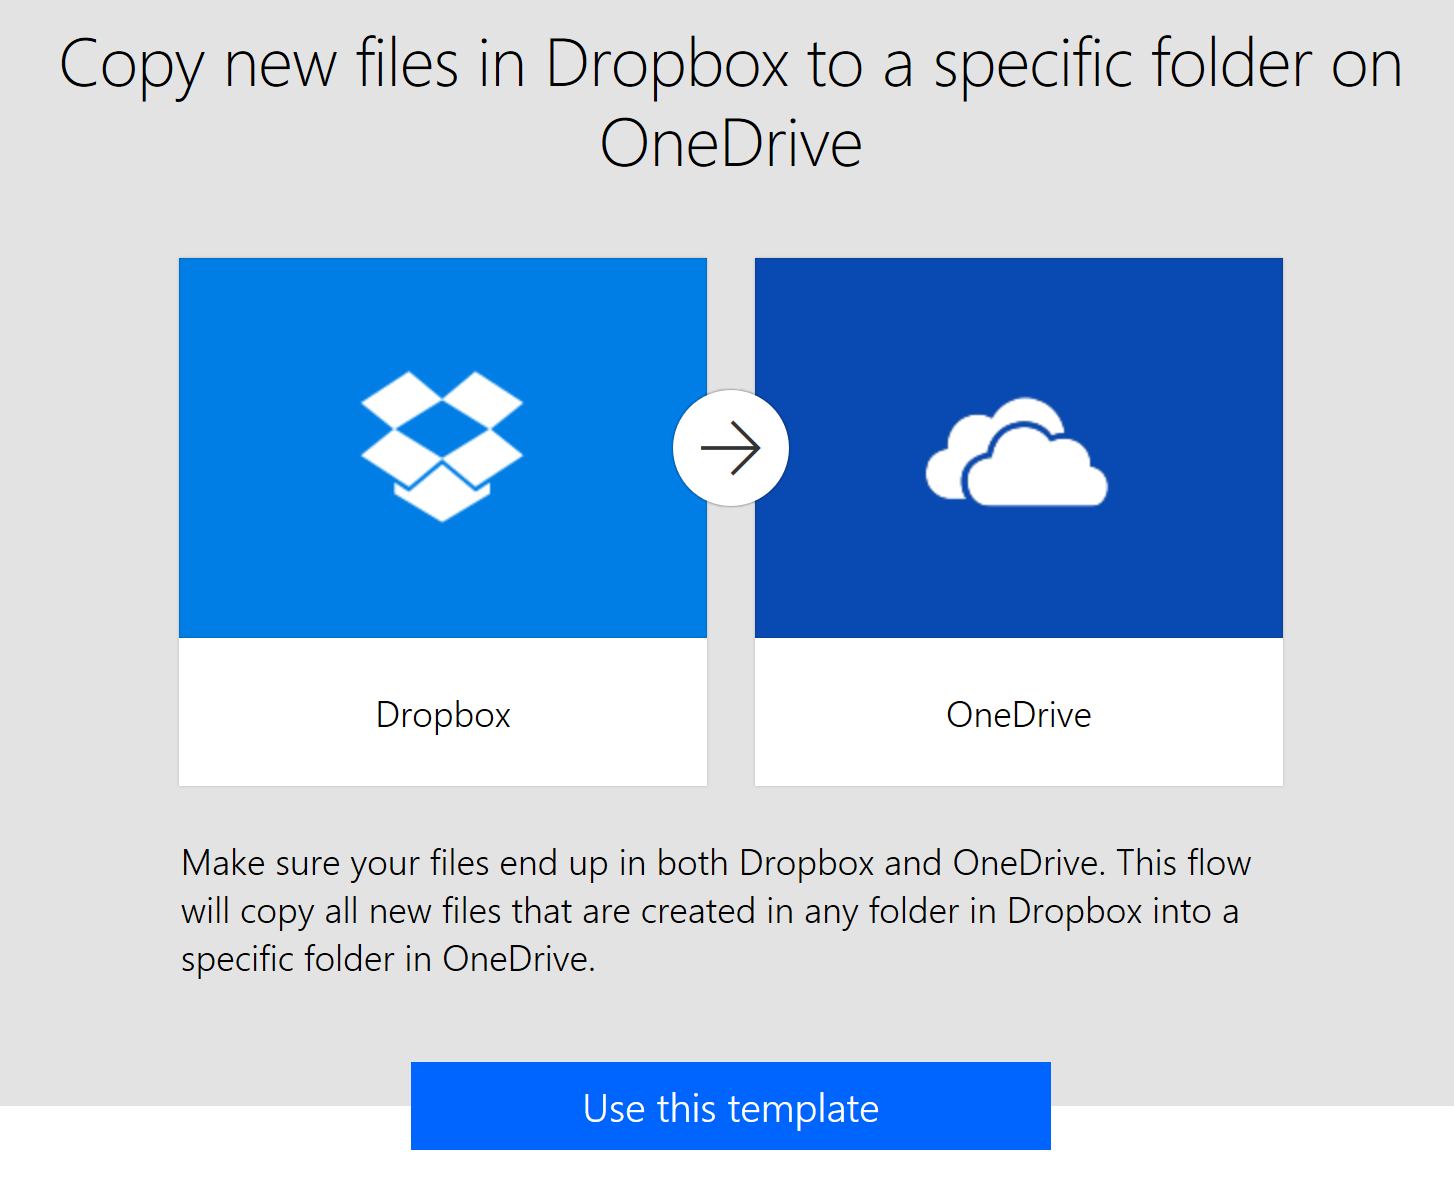 Day 254 – Flow: Copy new files in Dropbox to a specific